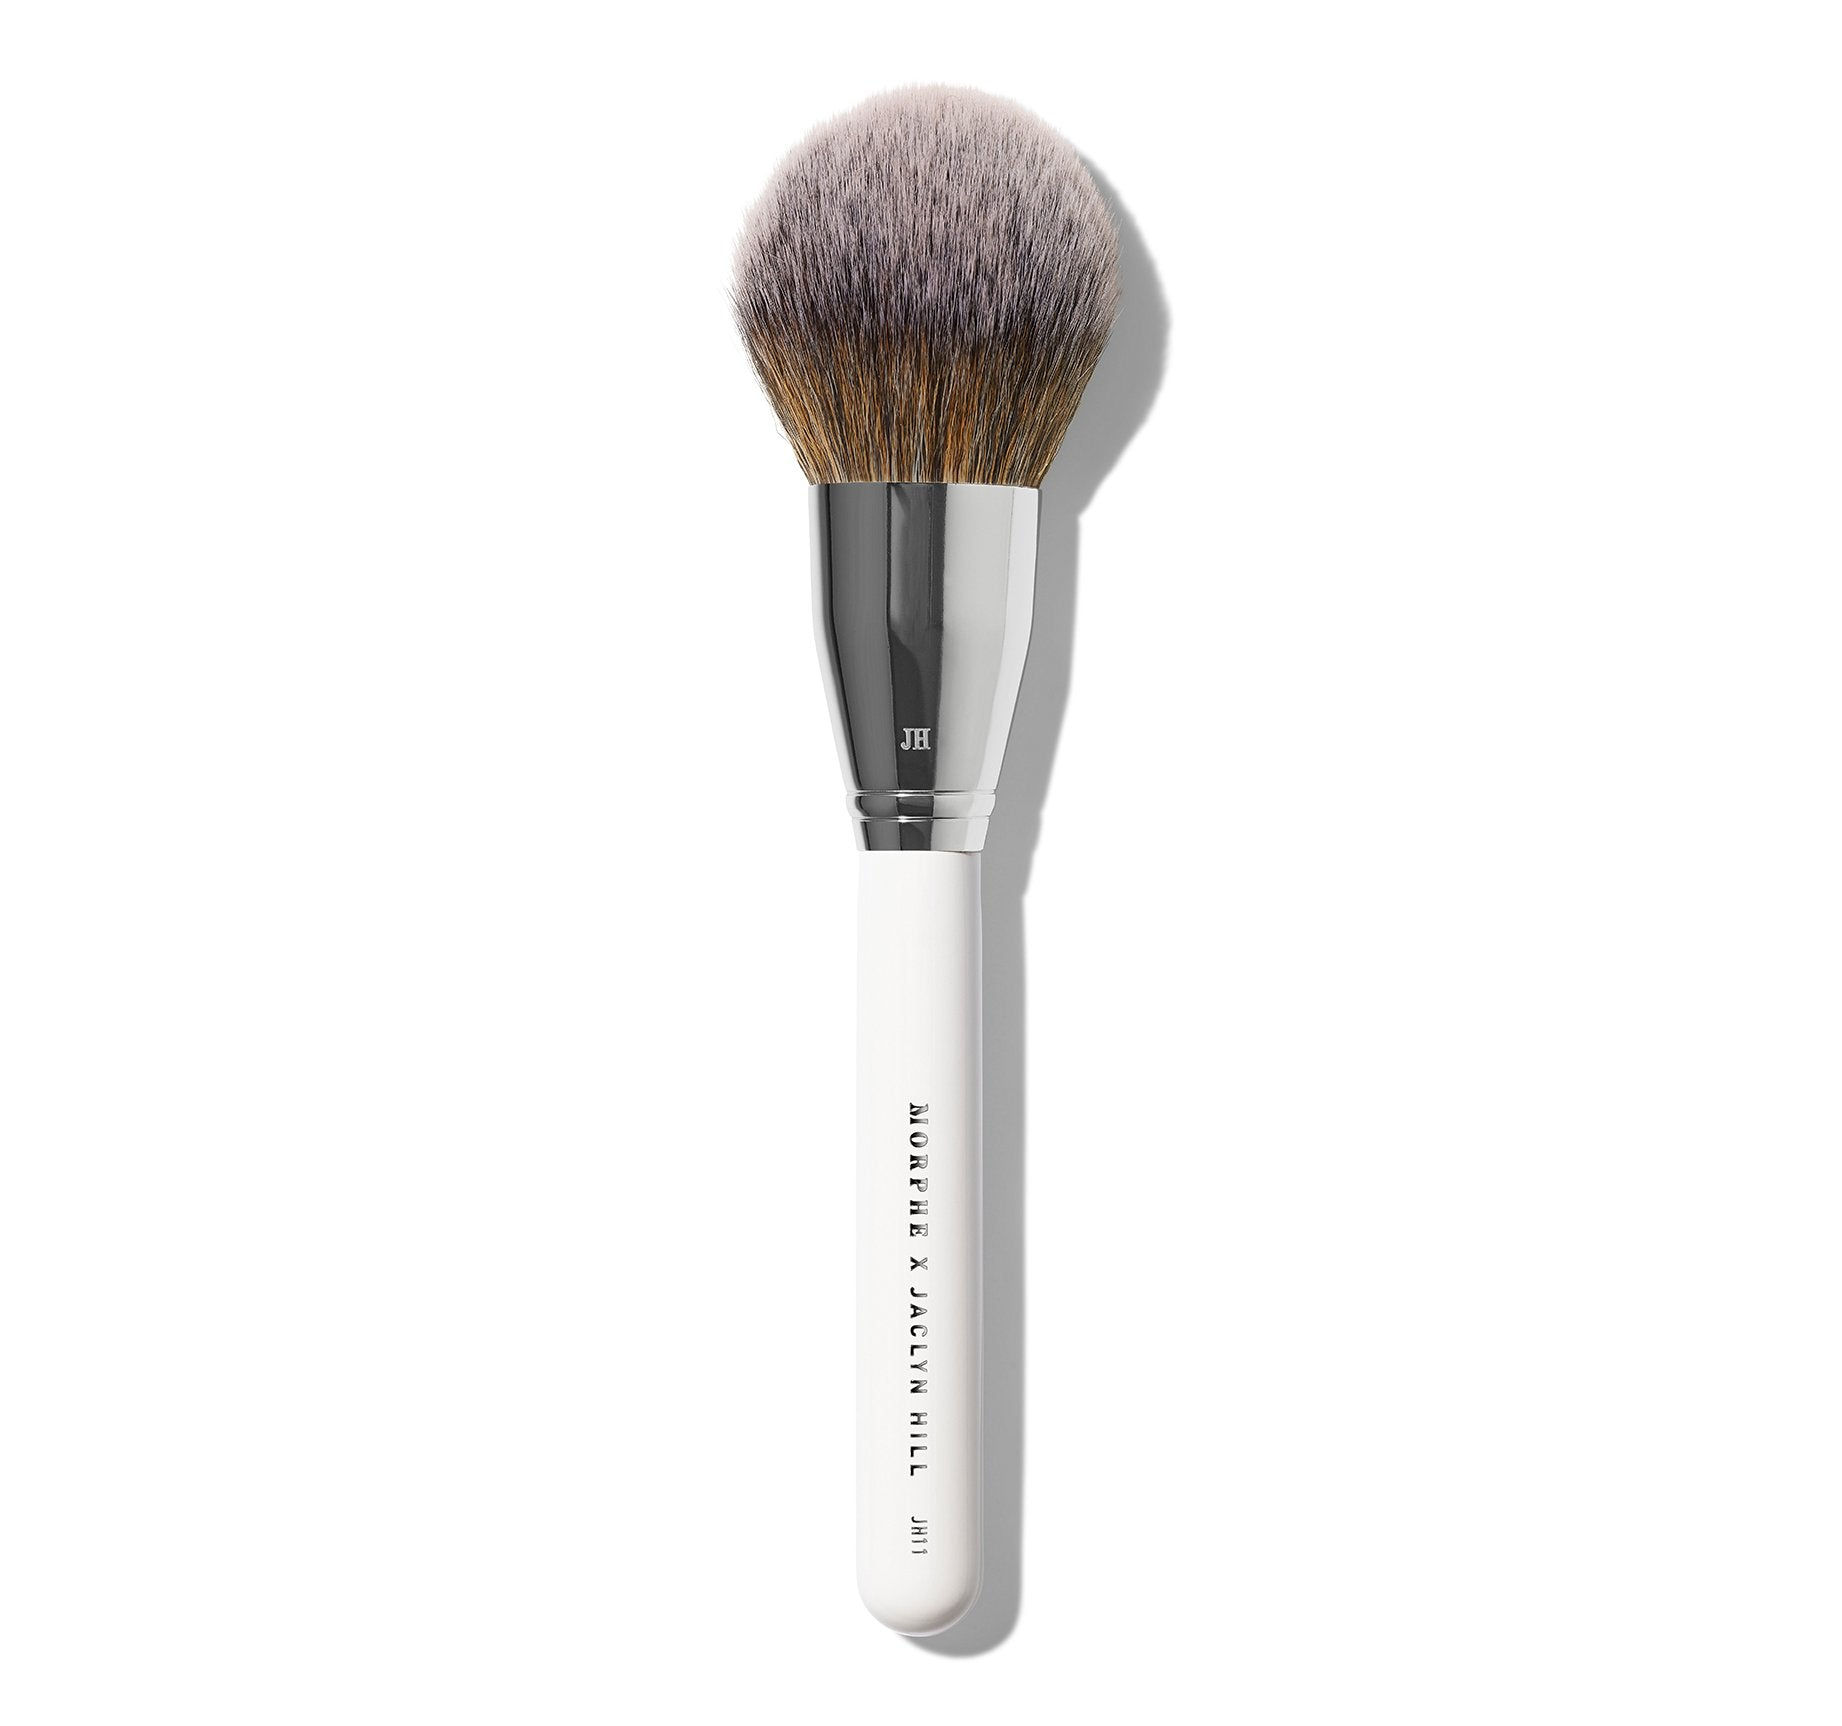 MORPHE X JACLYN HILL JH11 SWEEPING BEAUTY BRUSH, view larger image